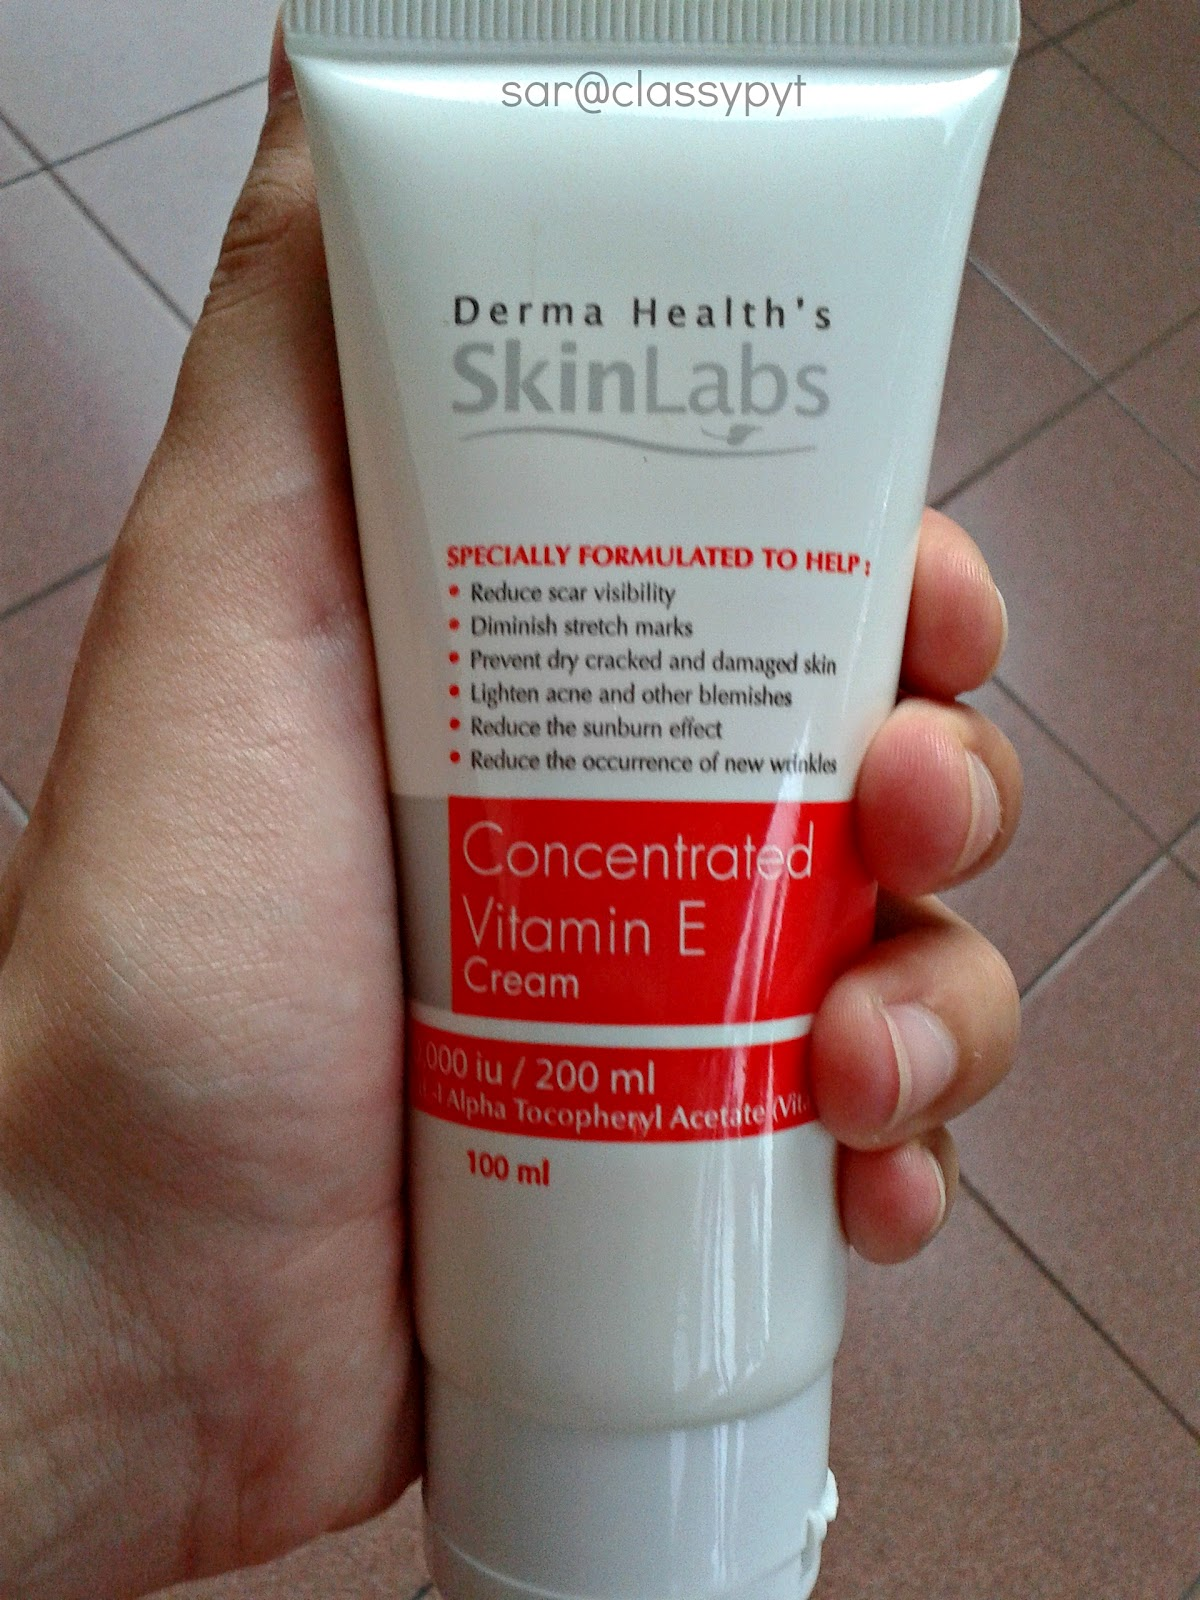 Classypyt Review Derma Health S Skinlabs Concentrated Vitamin E Cream